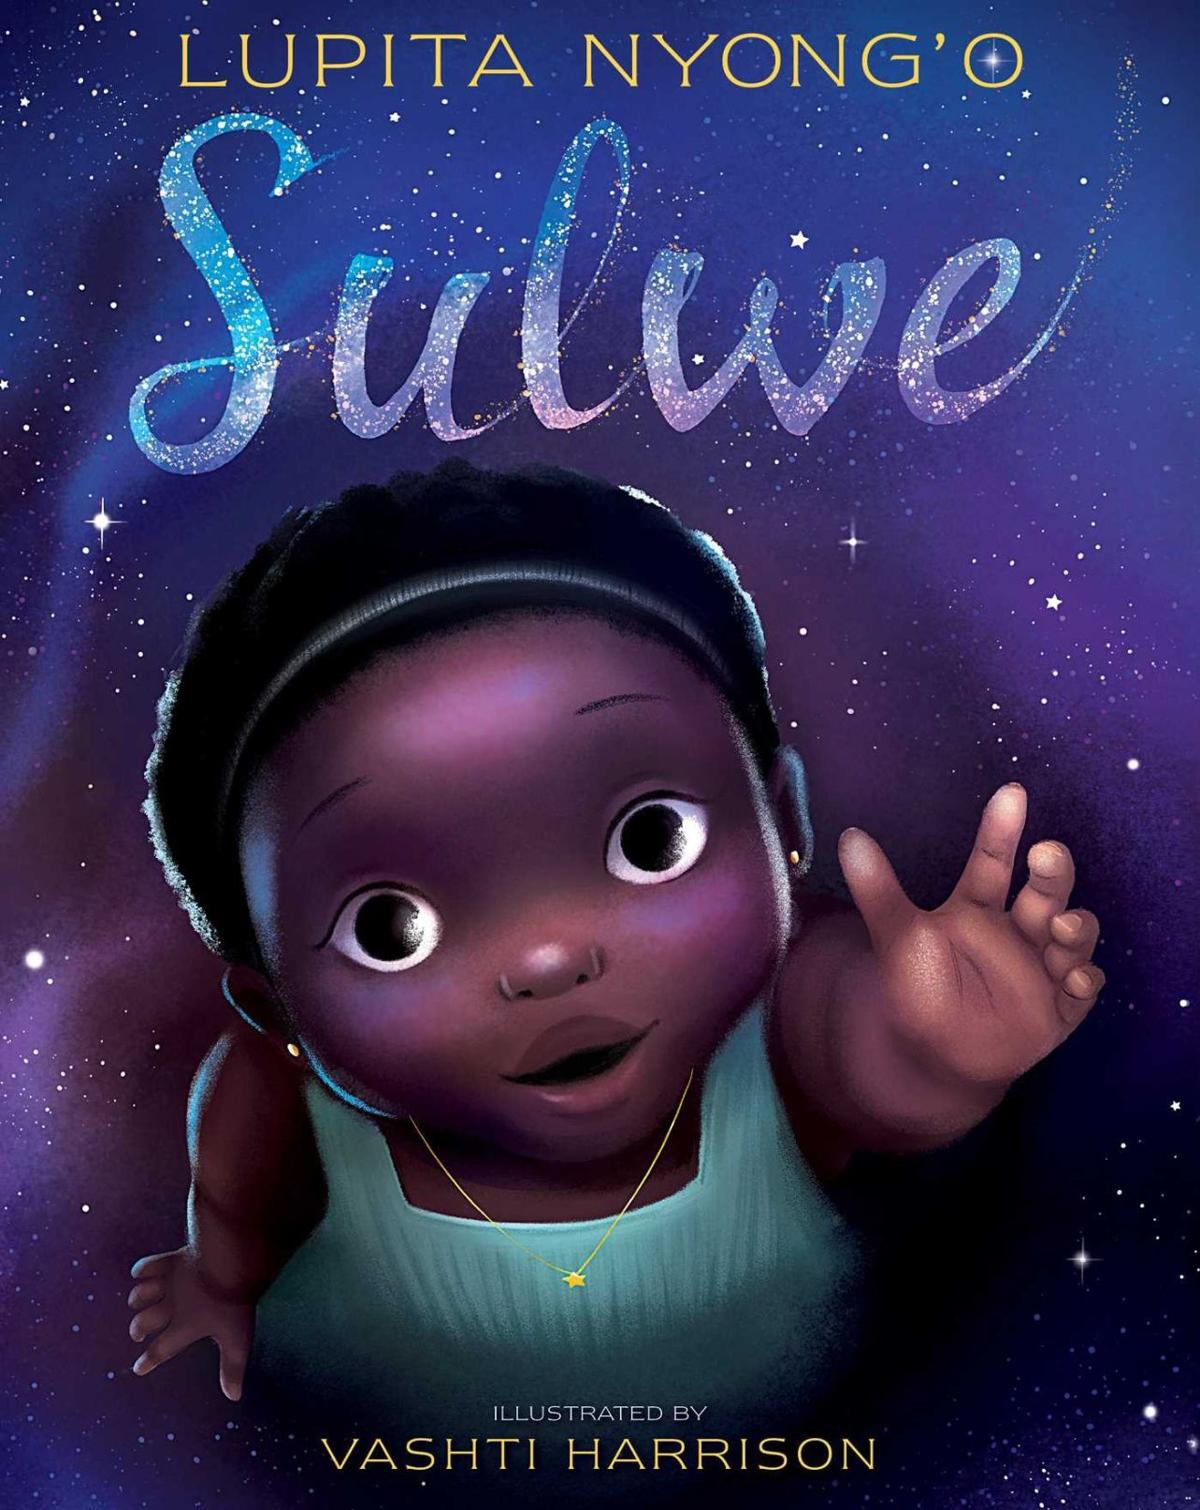 Lupita Nyong'o's 'Sulwe' packed with valuable lessons for children